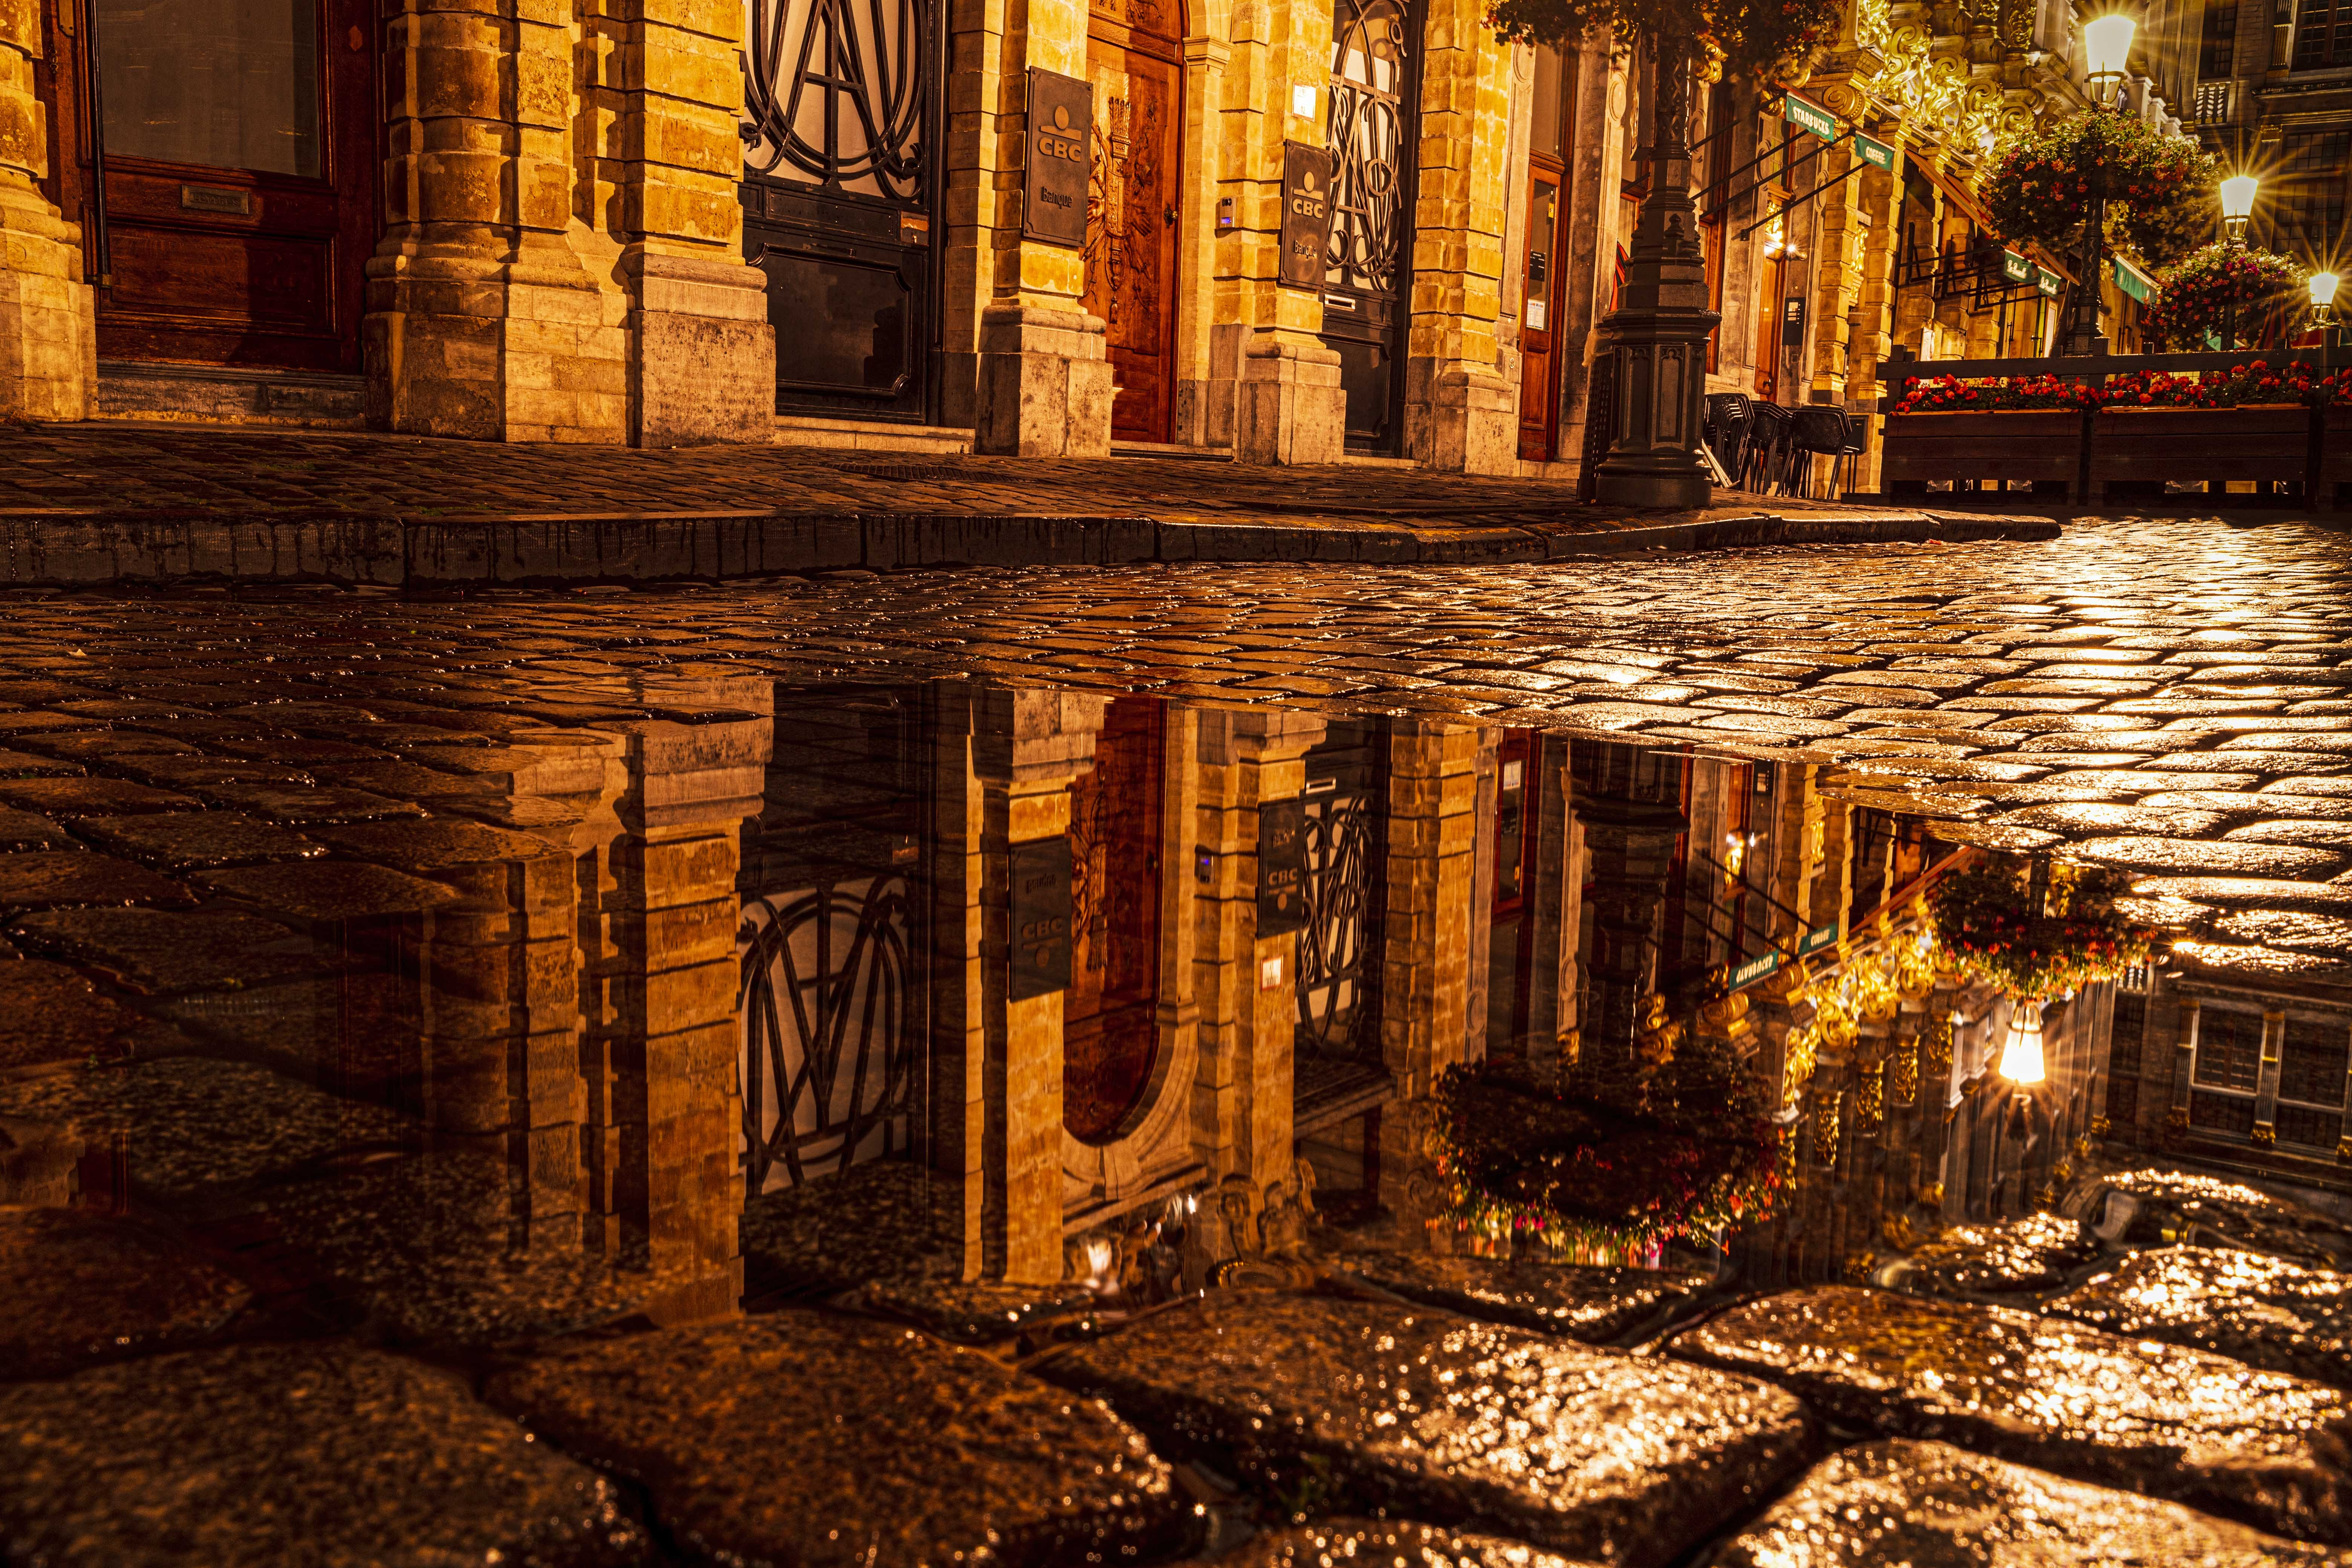 Brussles Reflection by Michael Osborne